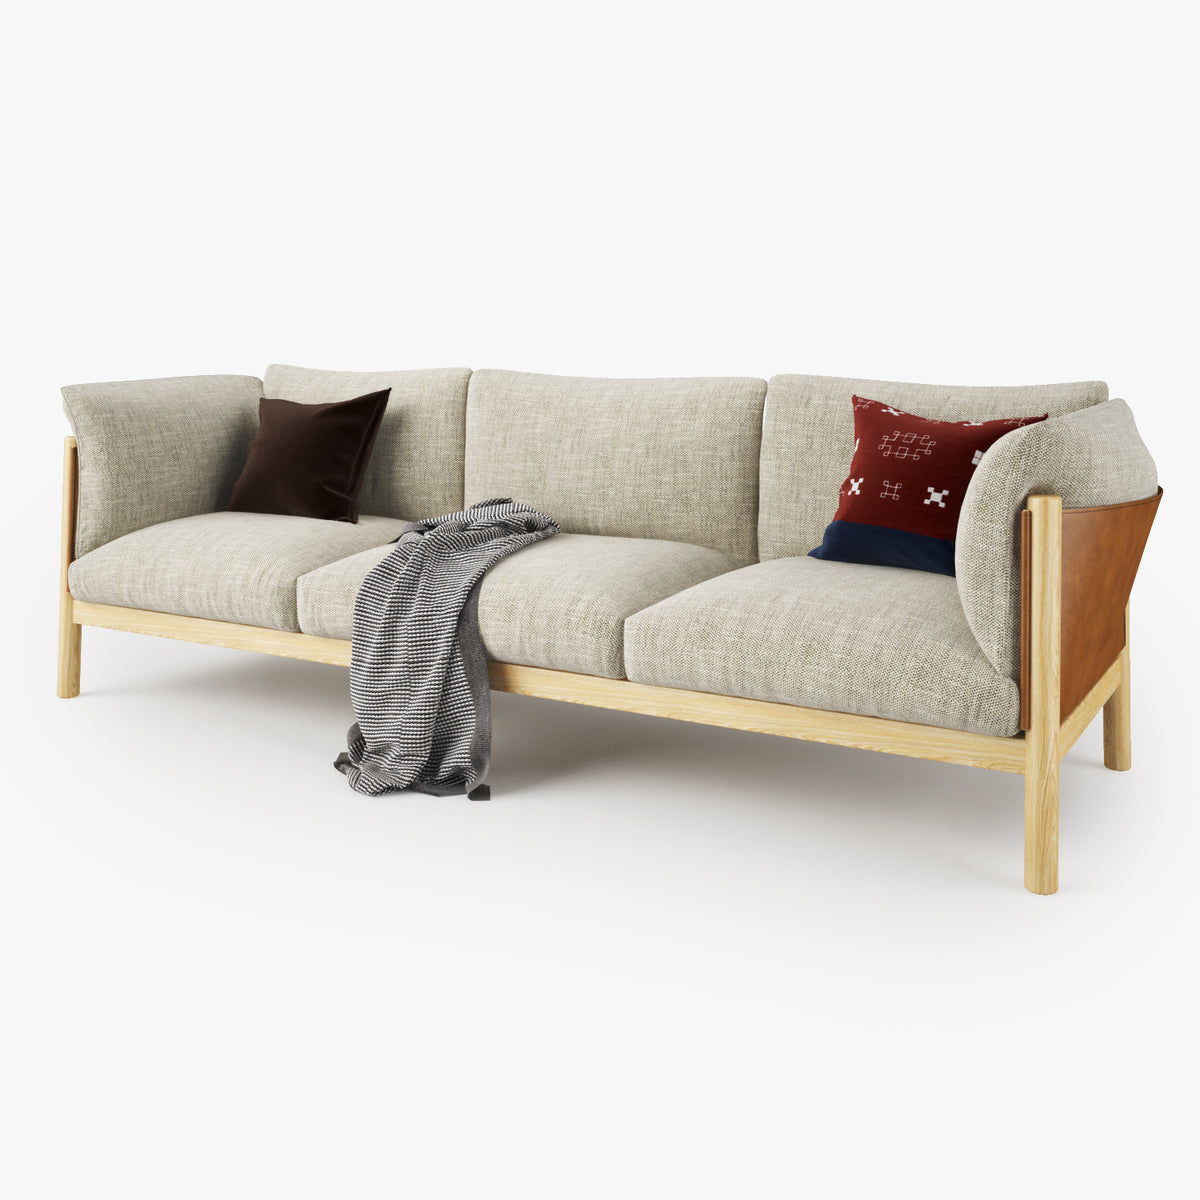 DePadova Yak Three Seater Sofa 3D Model